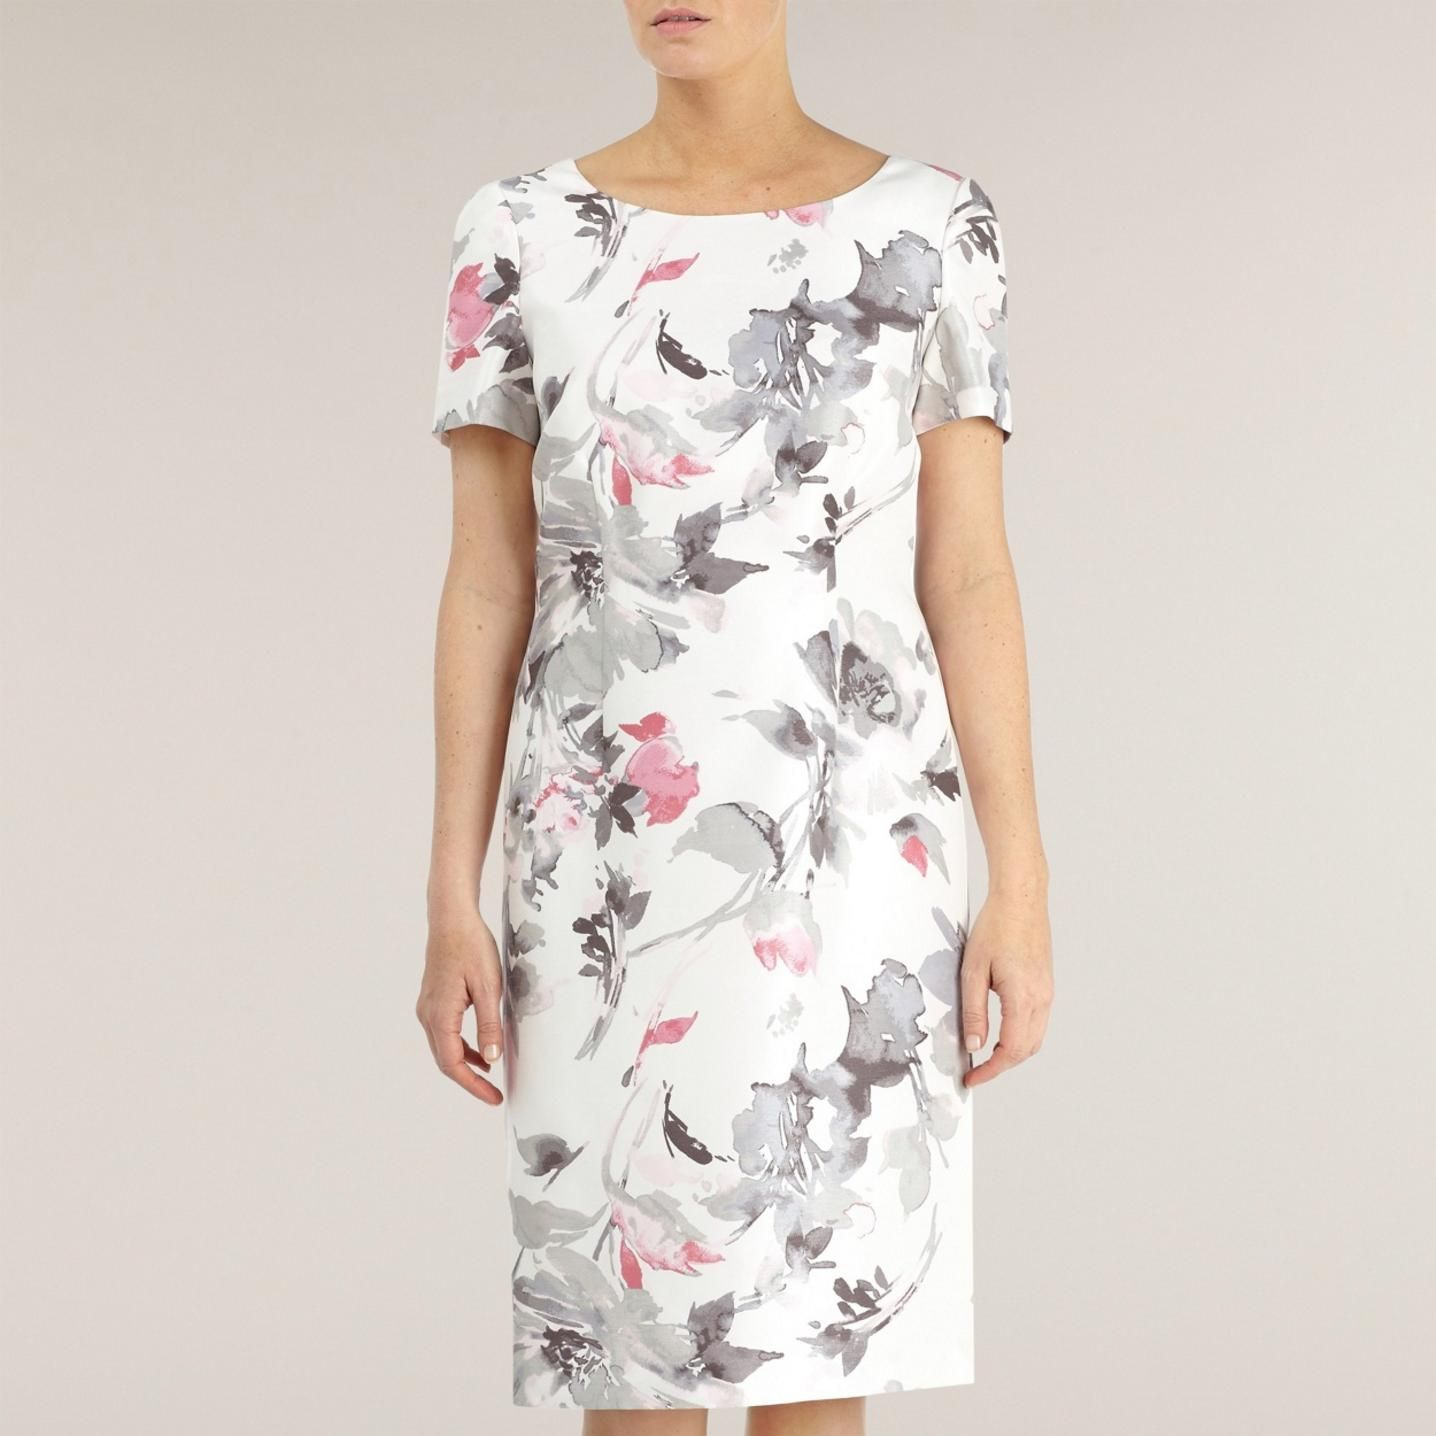 Soft Floral Shift Dress in white, pink and dove grey from Jacques Vert at  debenhams.ie - Fits Fully lined. A great dress up or dress down outfit.